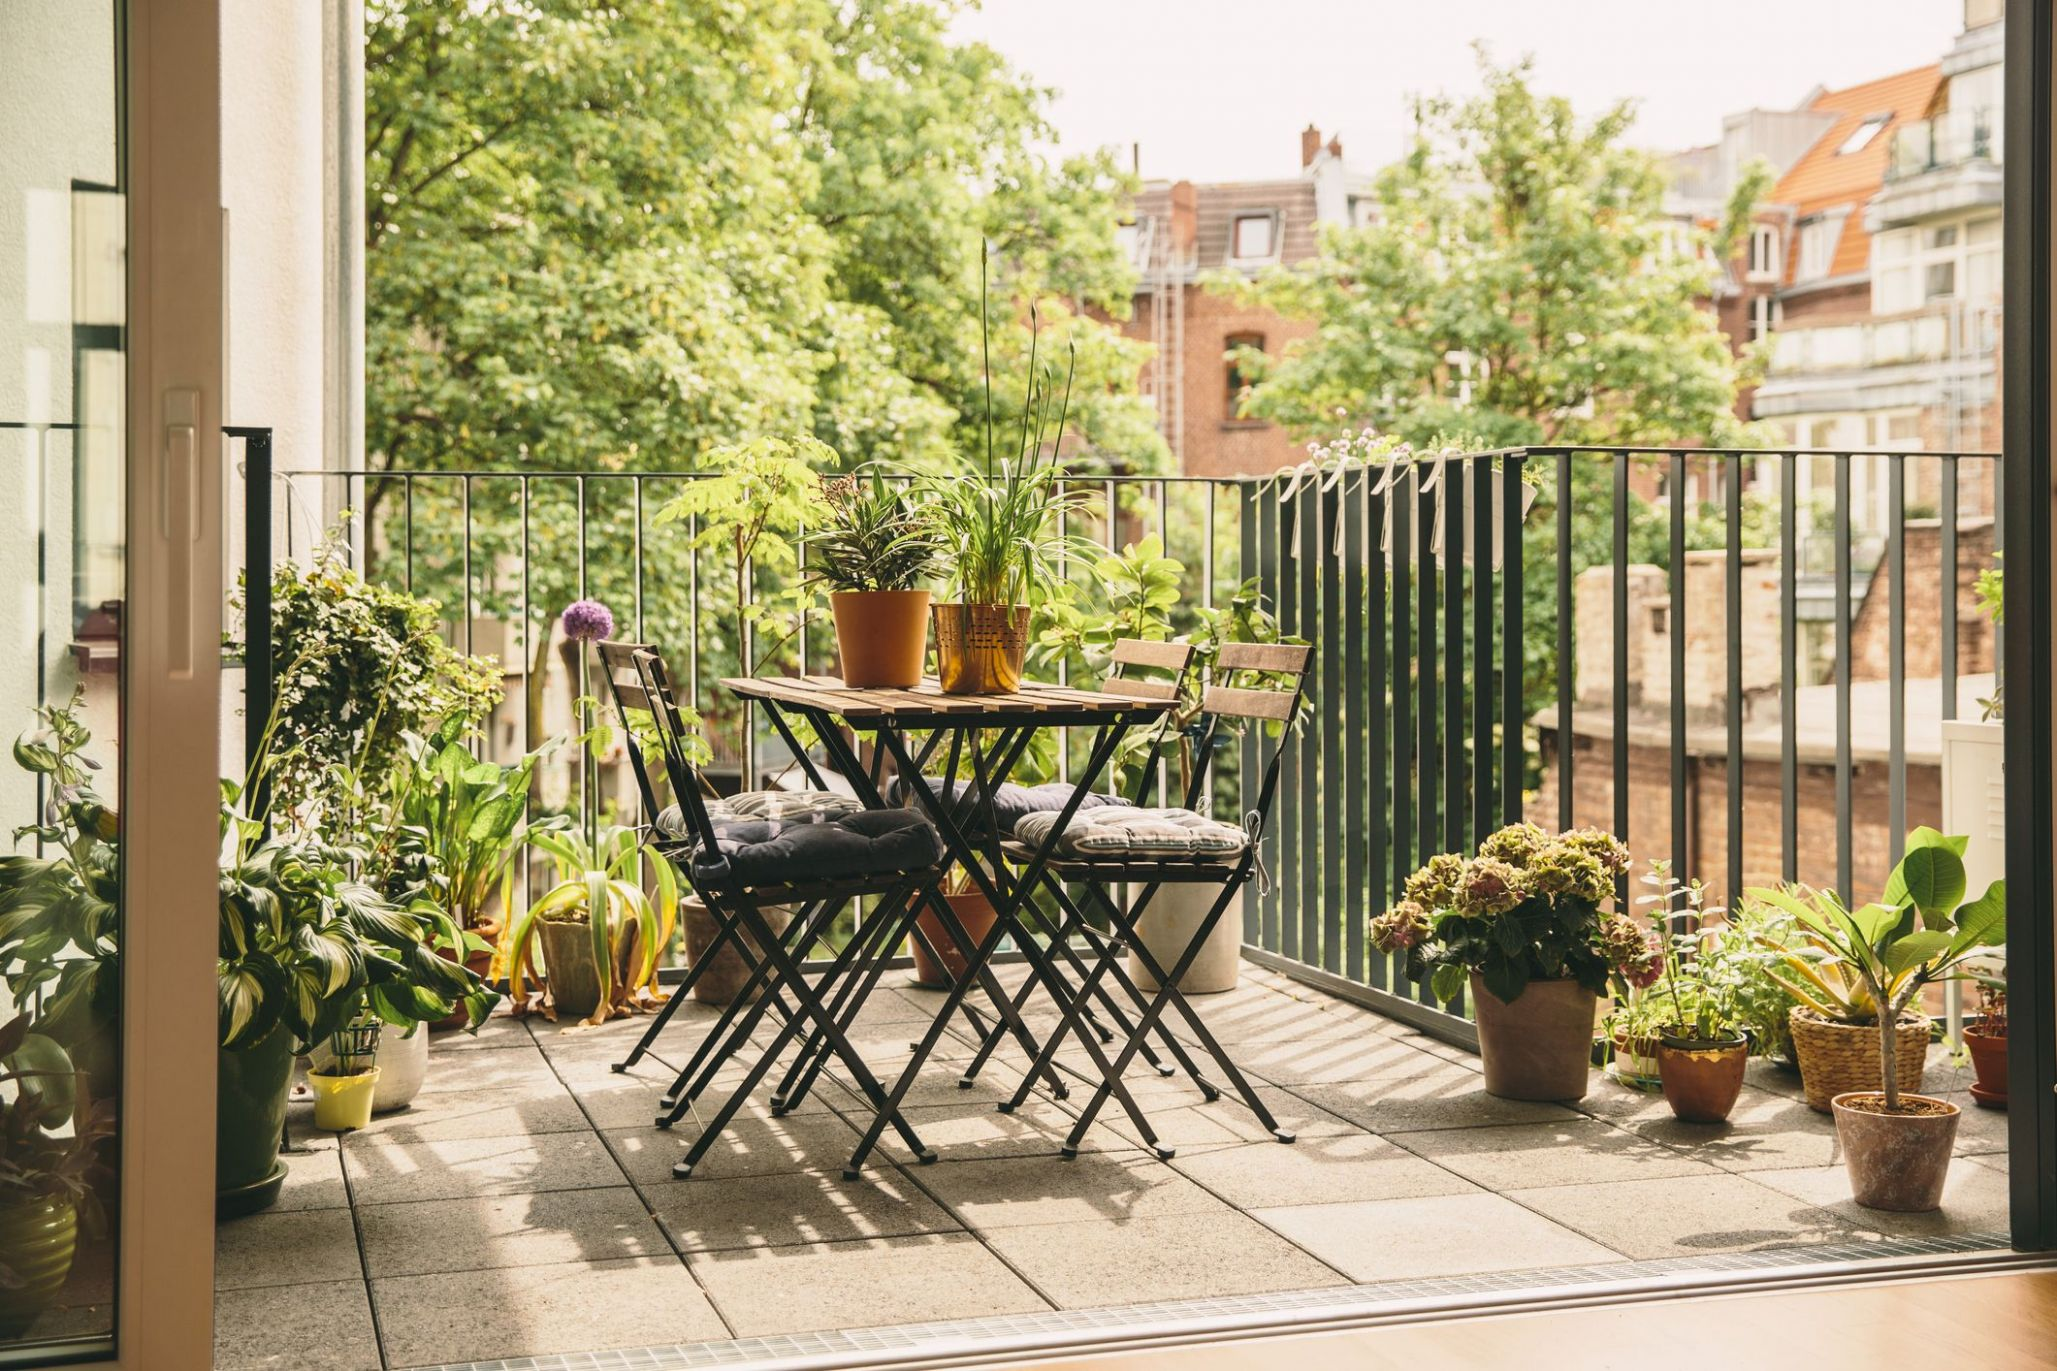 Balcony Garden Ideas - Plants, Furniture and Affordable Updates - balcony landscaping ideas